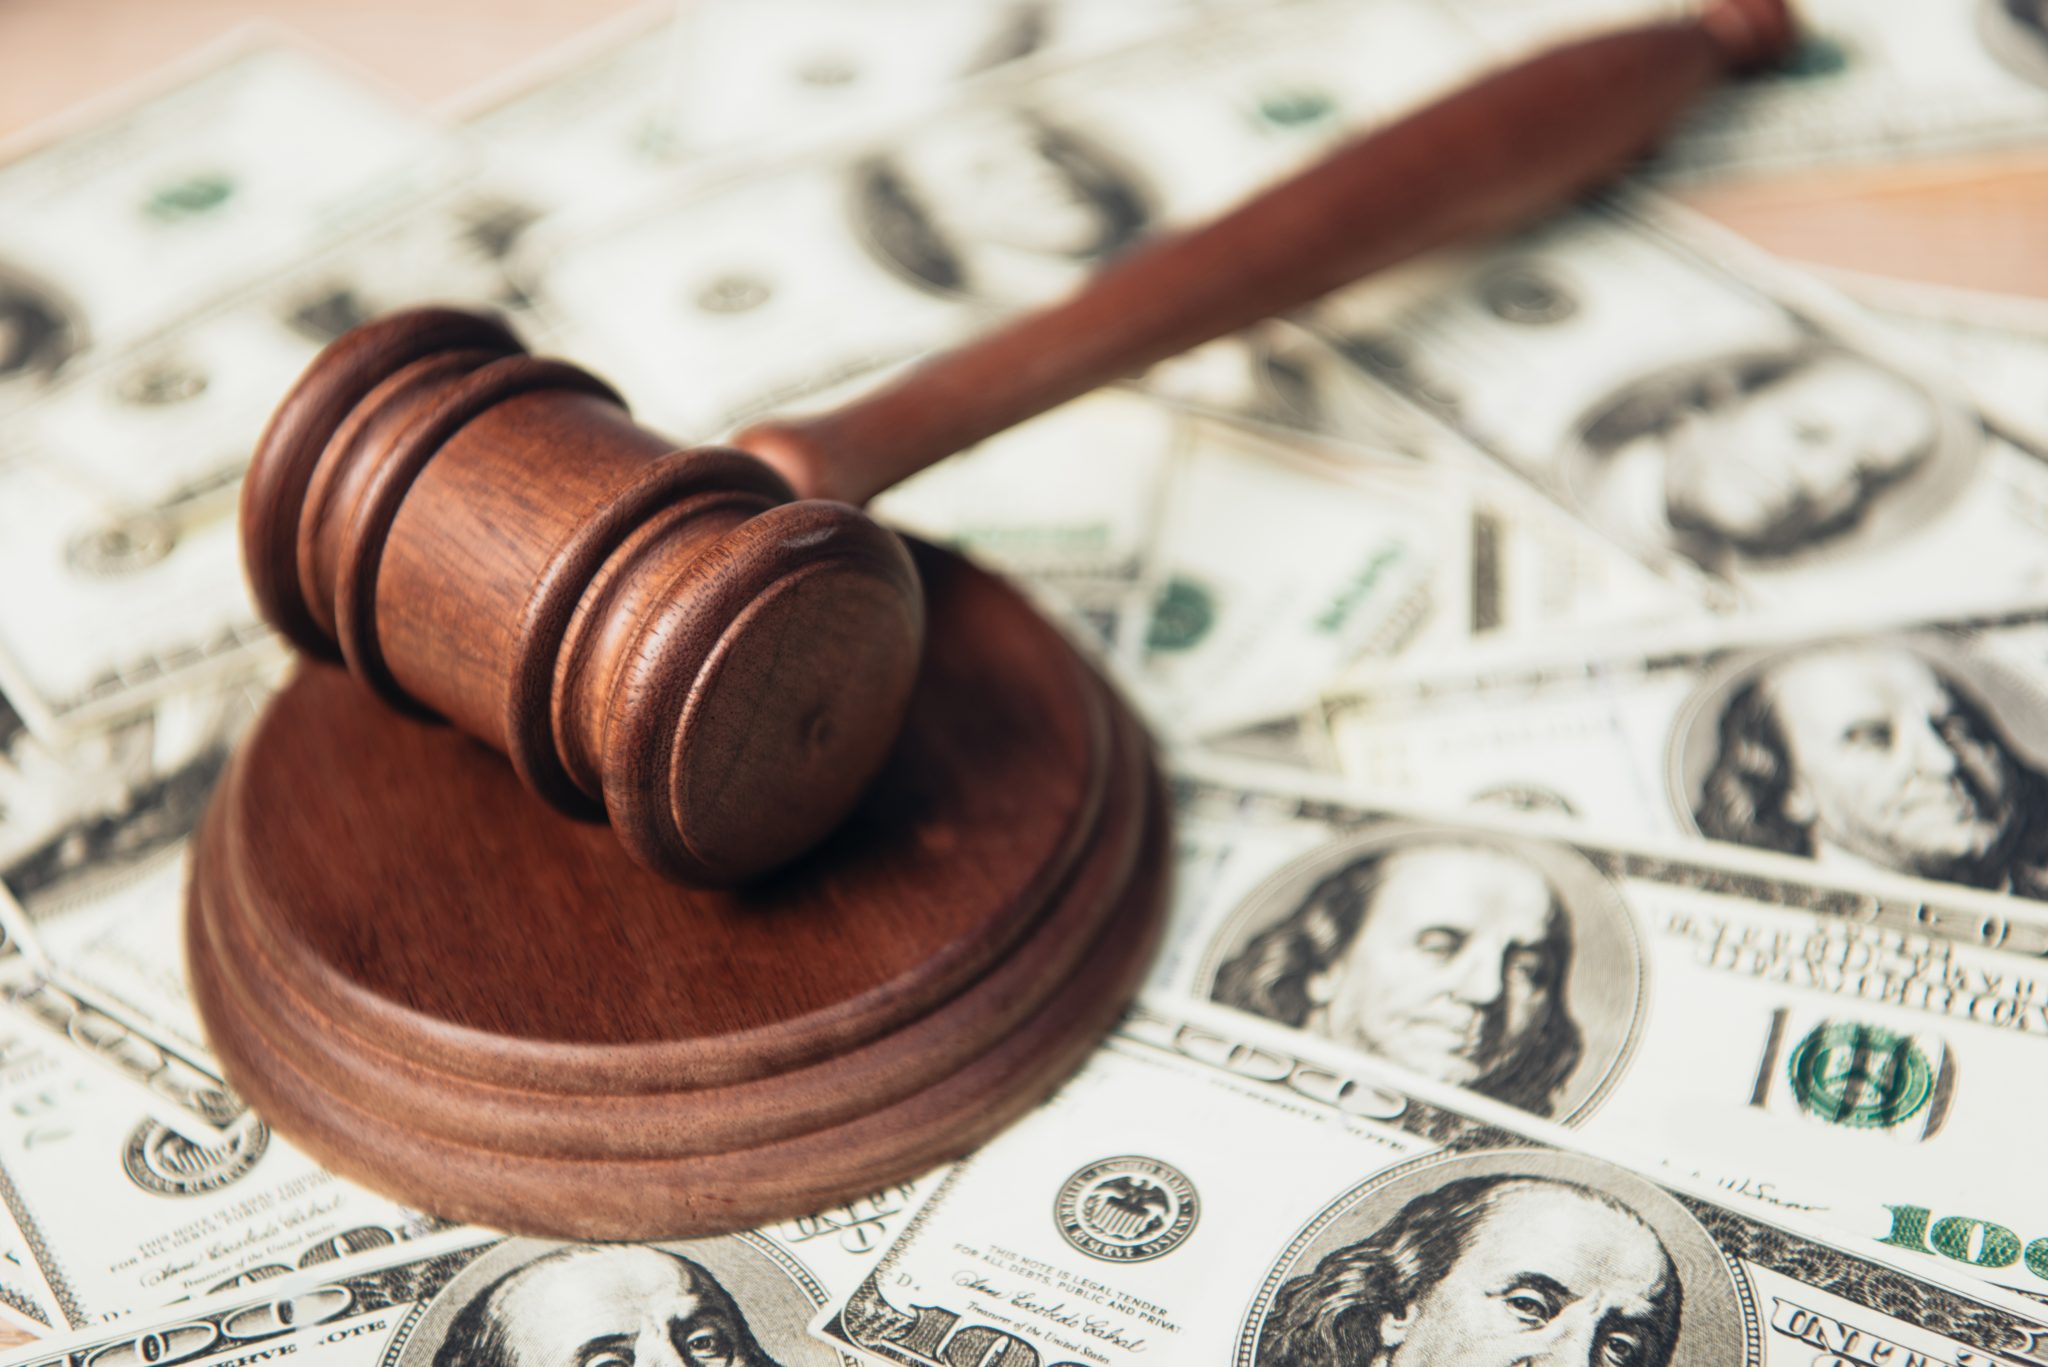 selective focus of wooden gavel near dollar banknotes